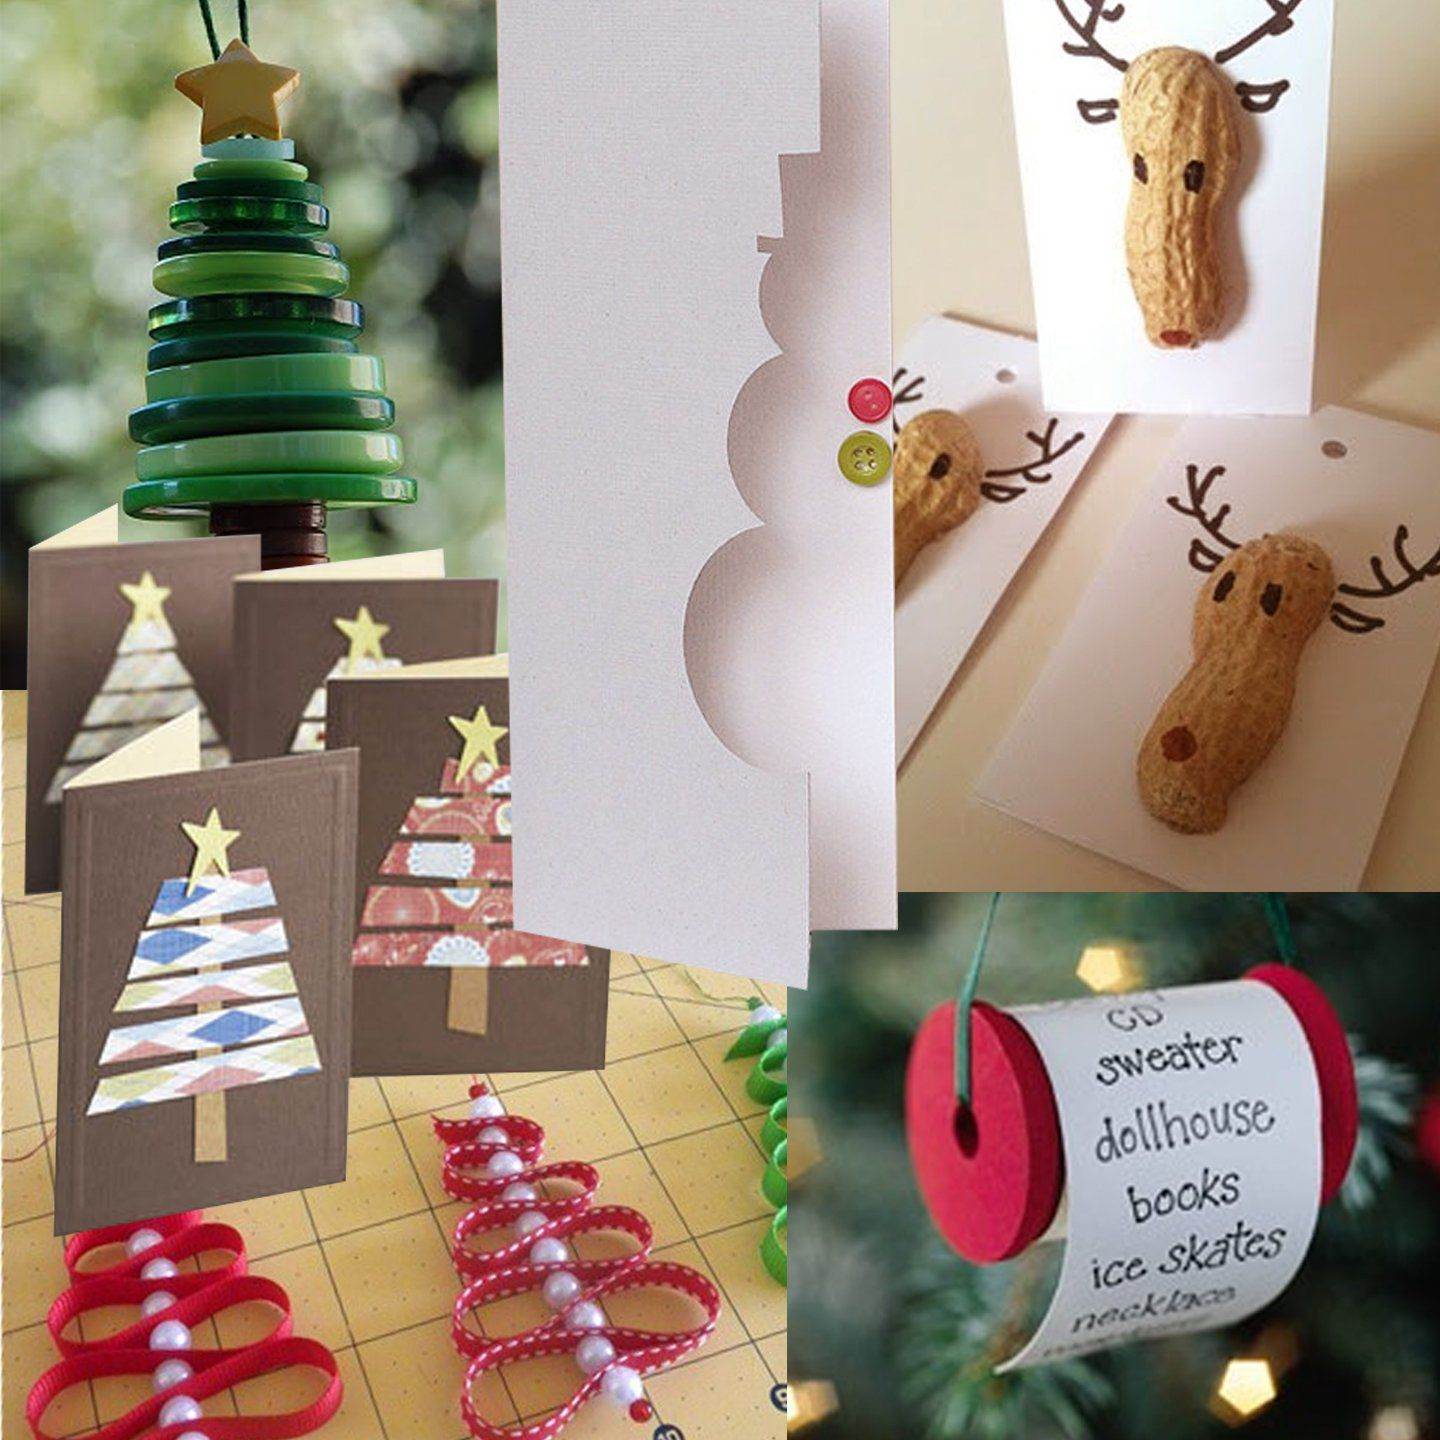 Diy Christmas Decorations Christmas Room Ideas Diy Decorations Xmas Decorations Homemade